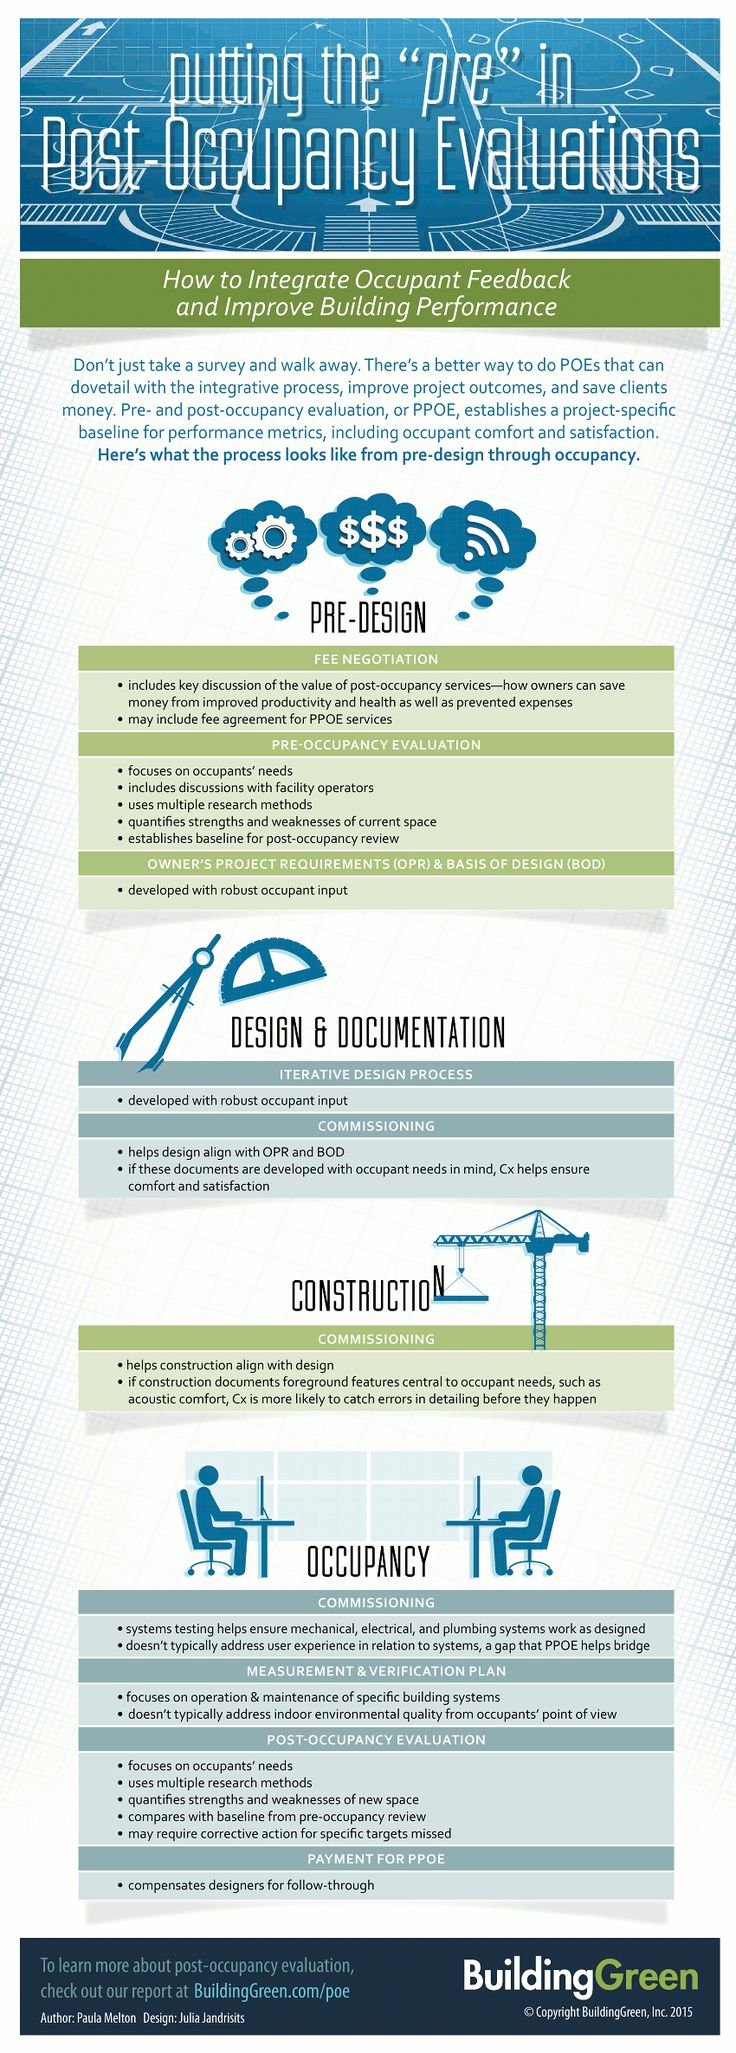 How to Integrate Occupant Feedback and Improve Building Performance - Infographic